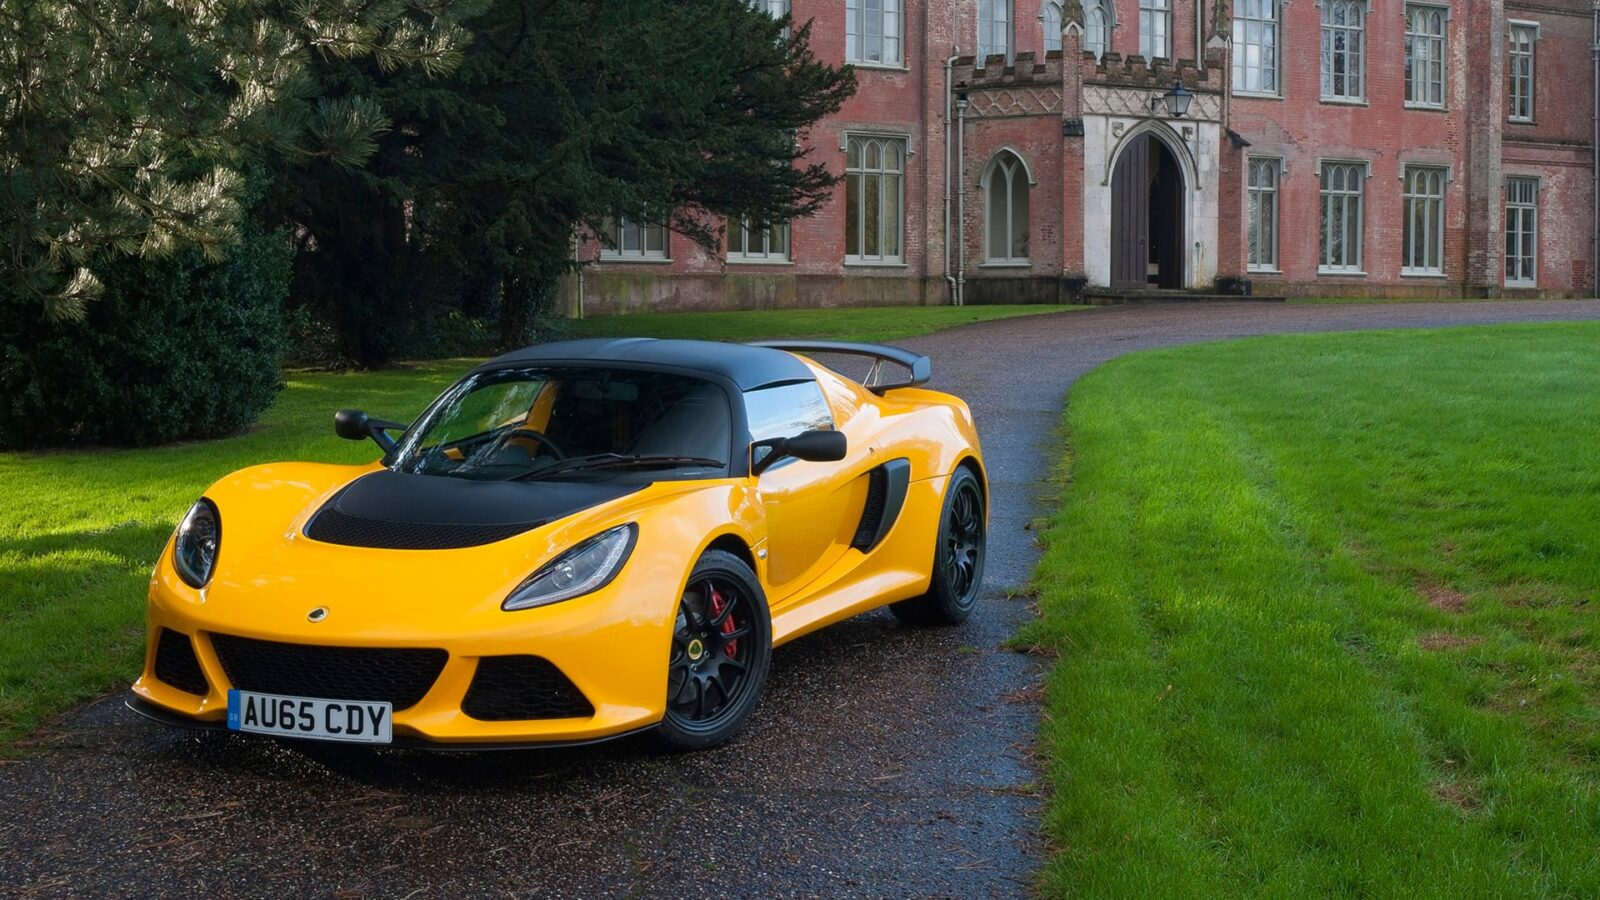 New 2016 Lotus Exige Sport 350 Yellow 2016 wallpaper